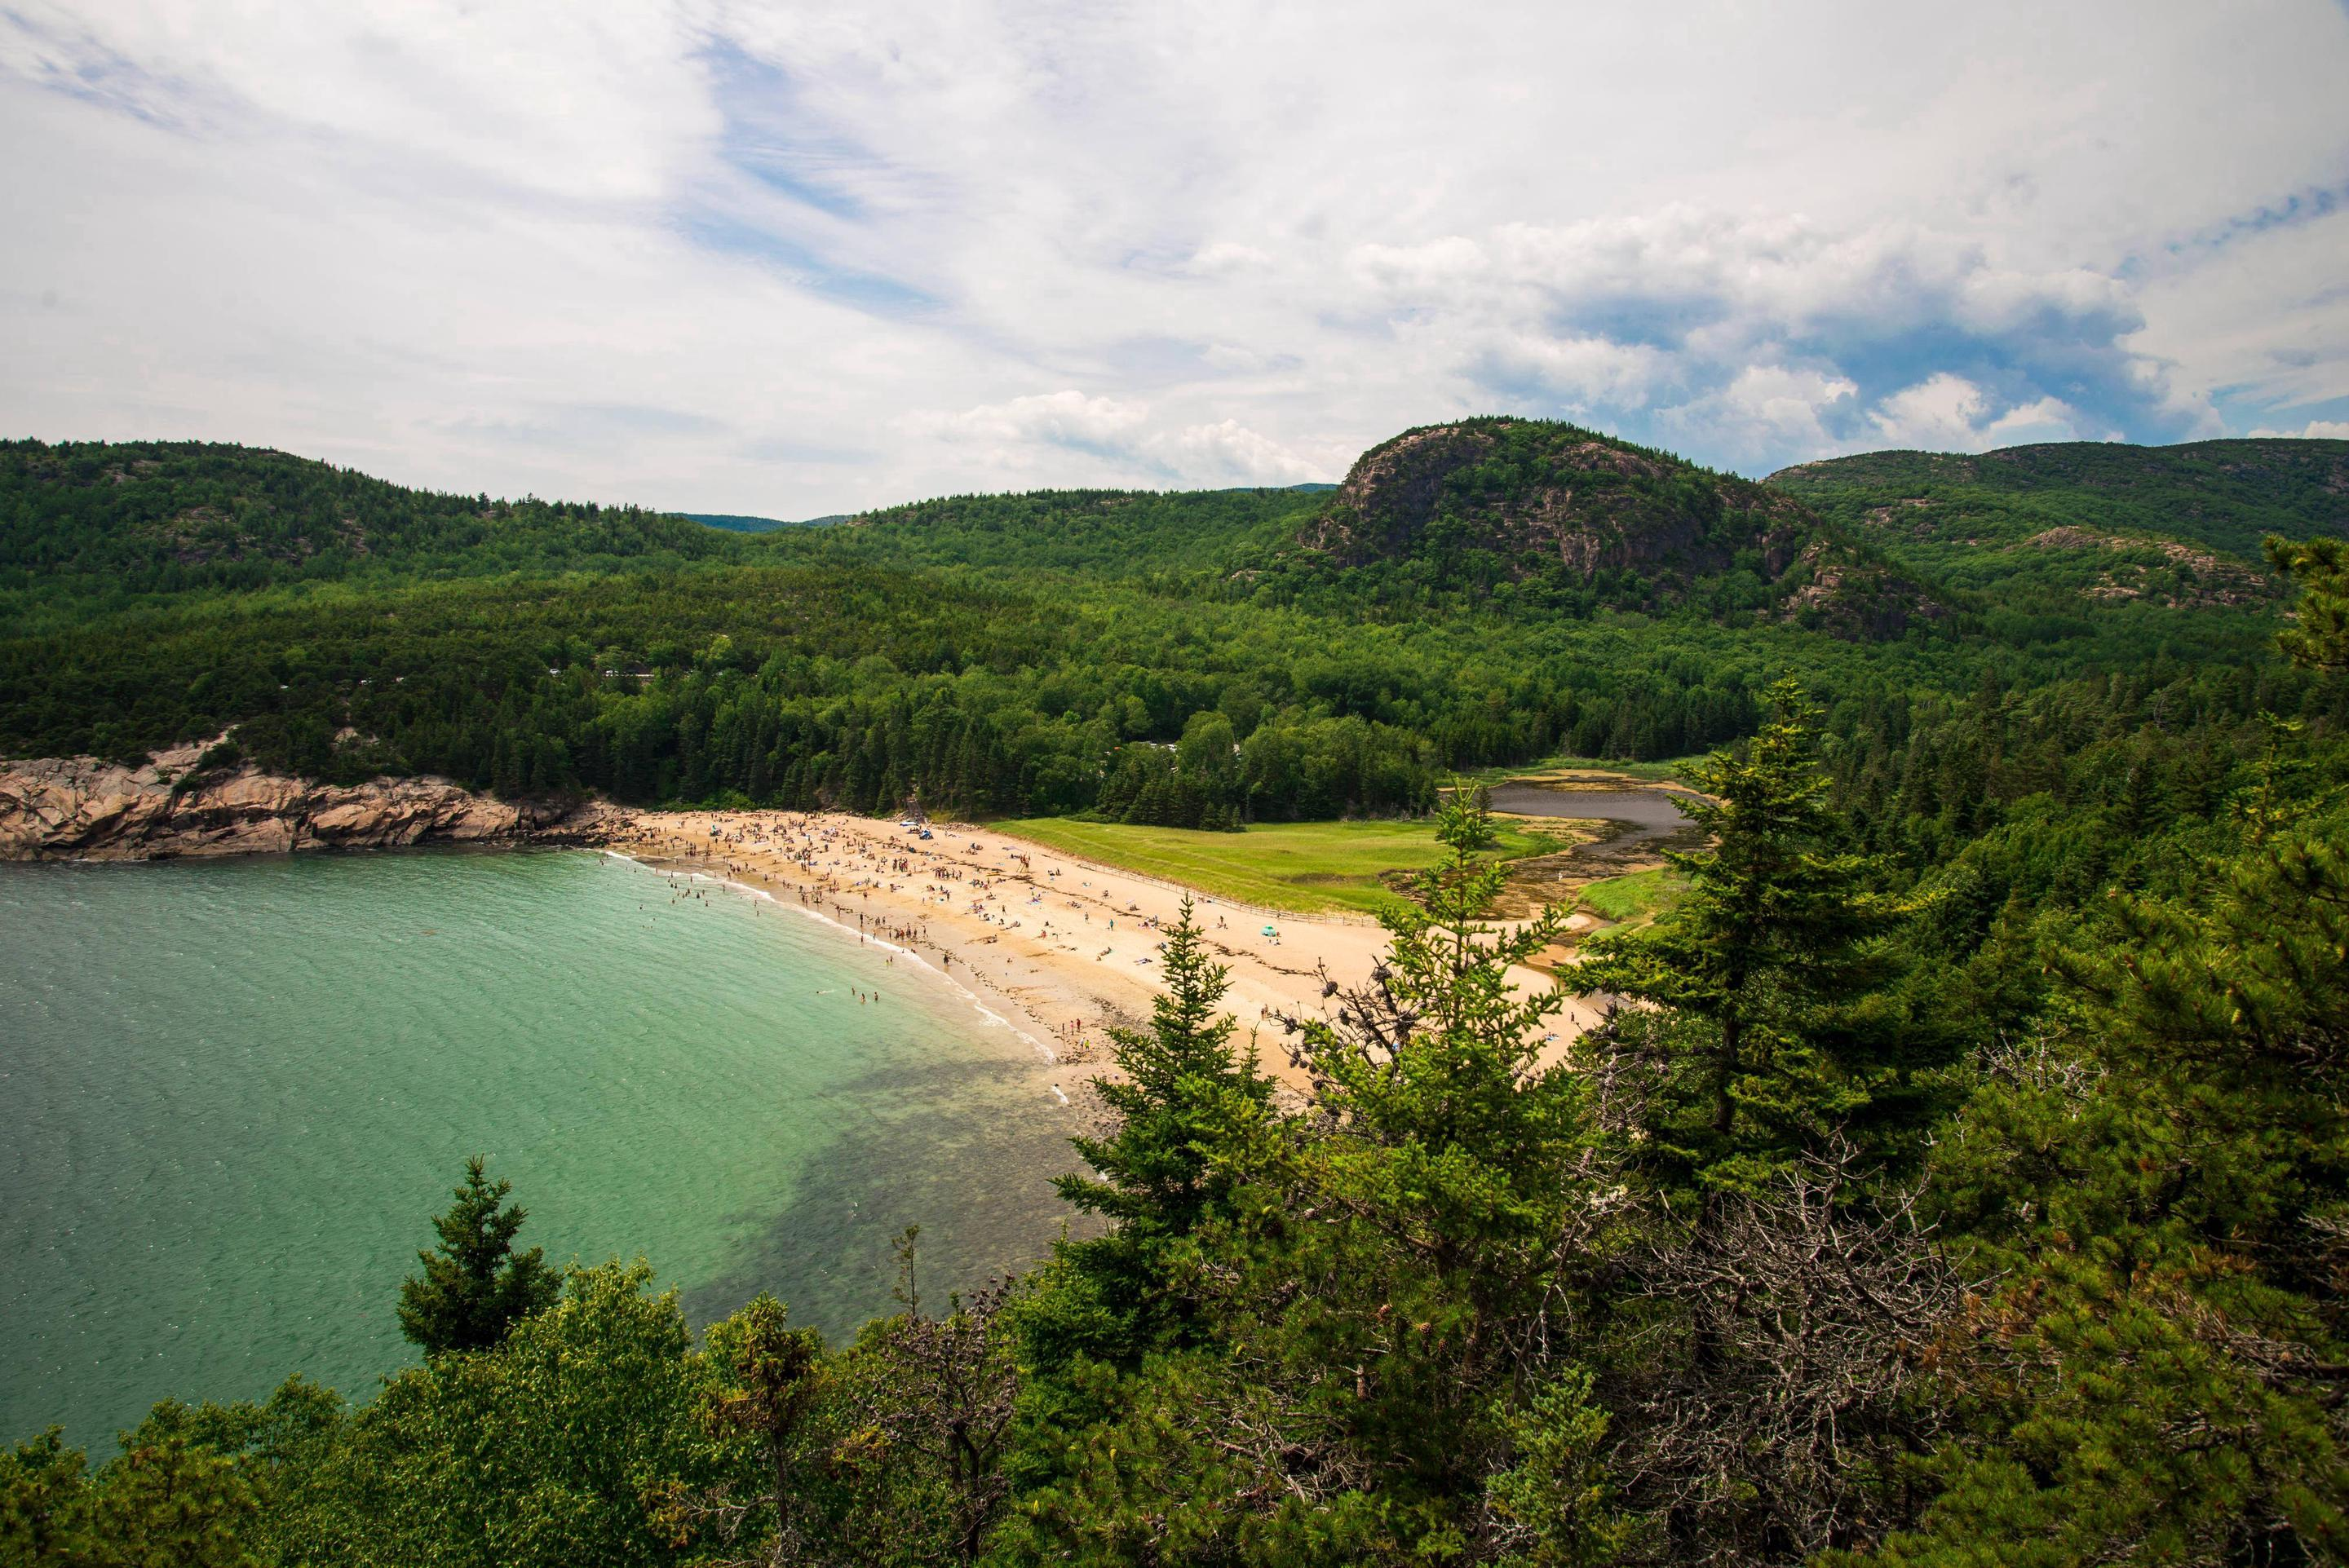 Wide beach with clear ocean waters surrounded trees, rocky coastline, and mountainsView of Sand Beach from the Great Head Trail